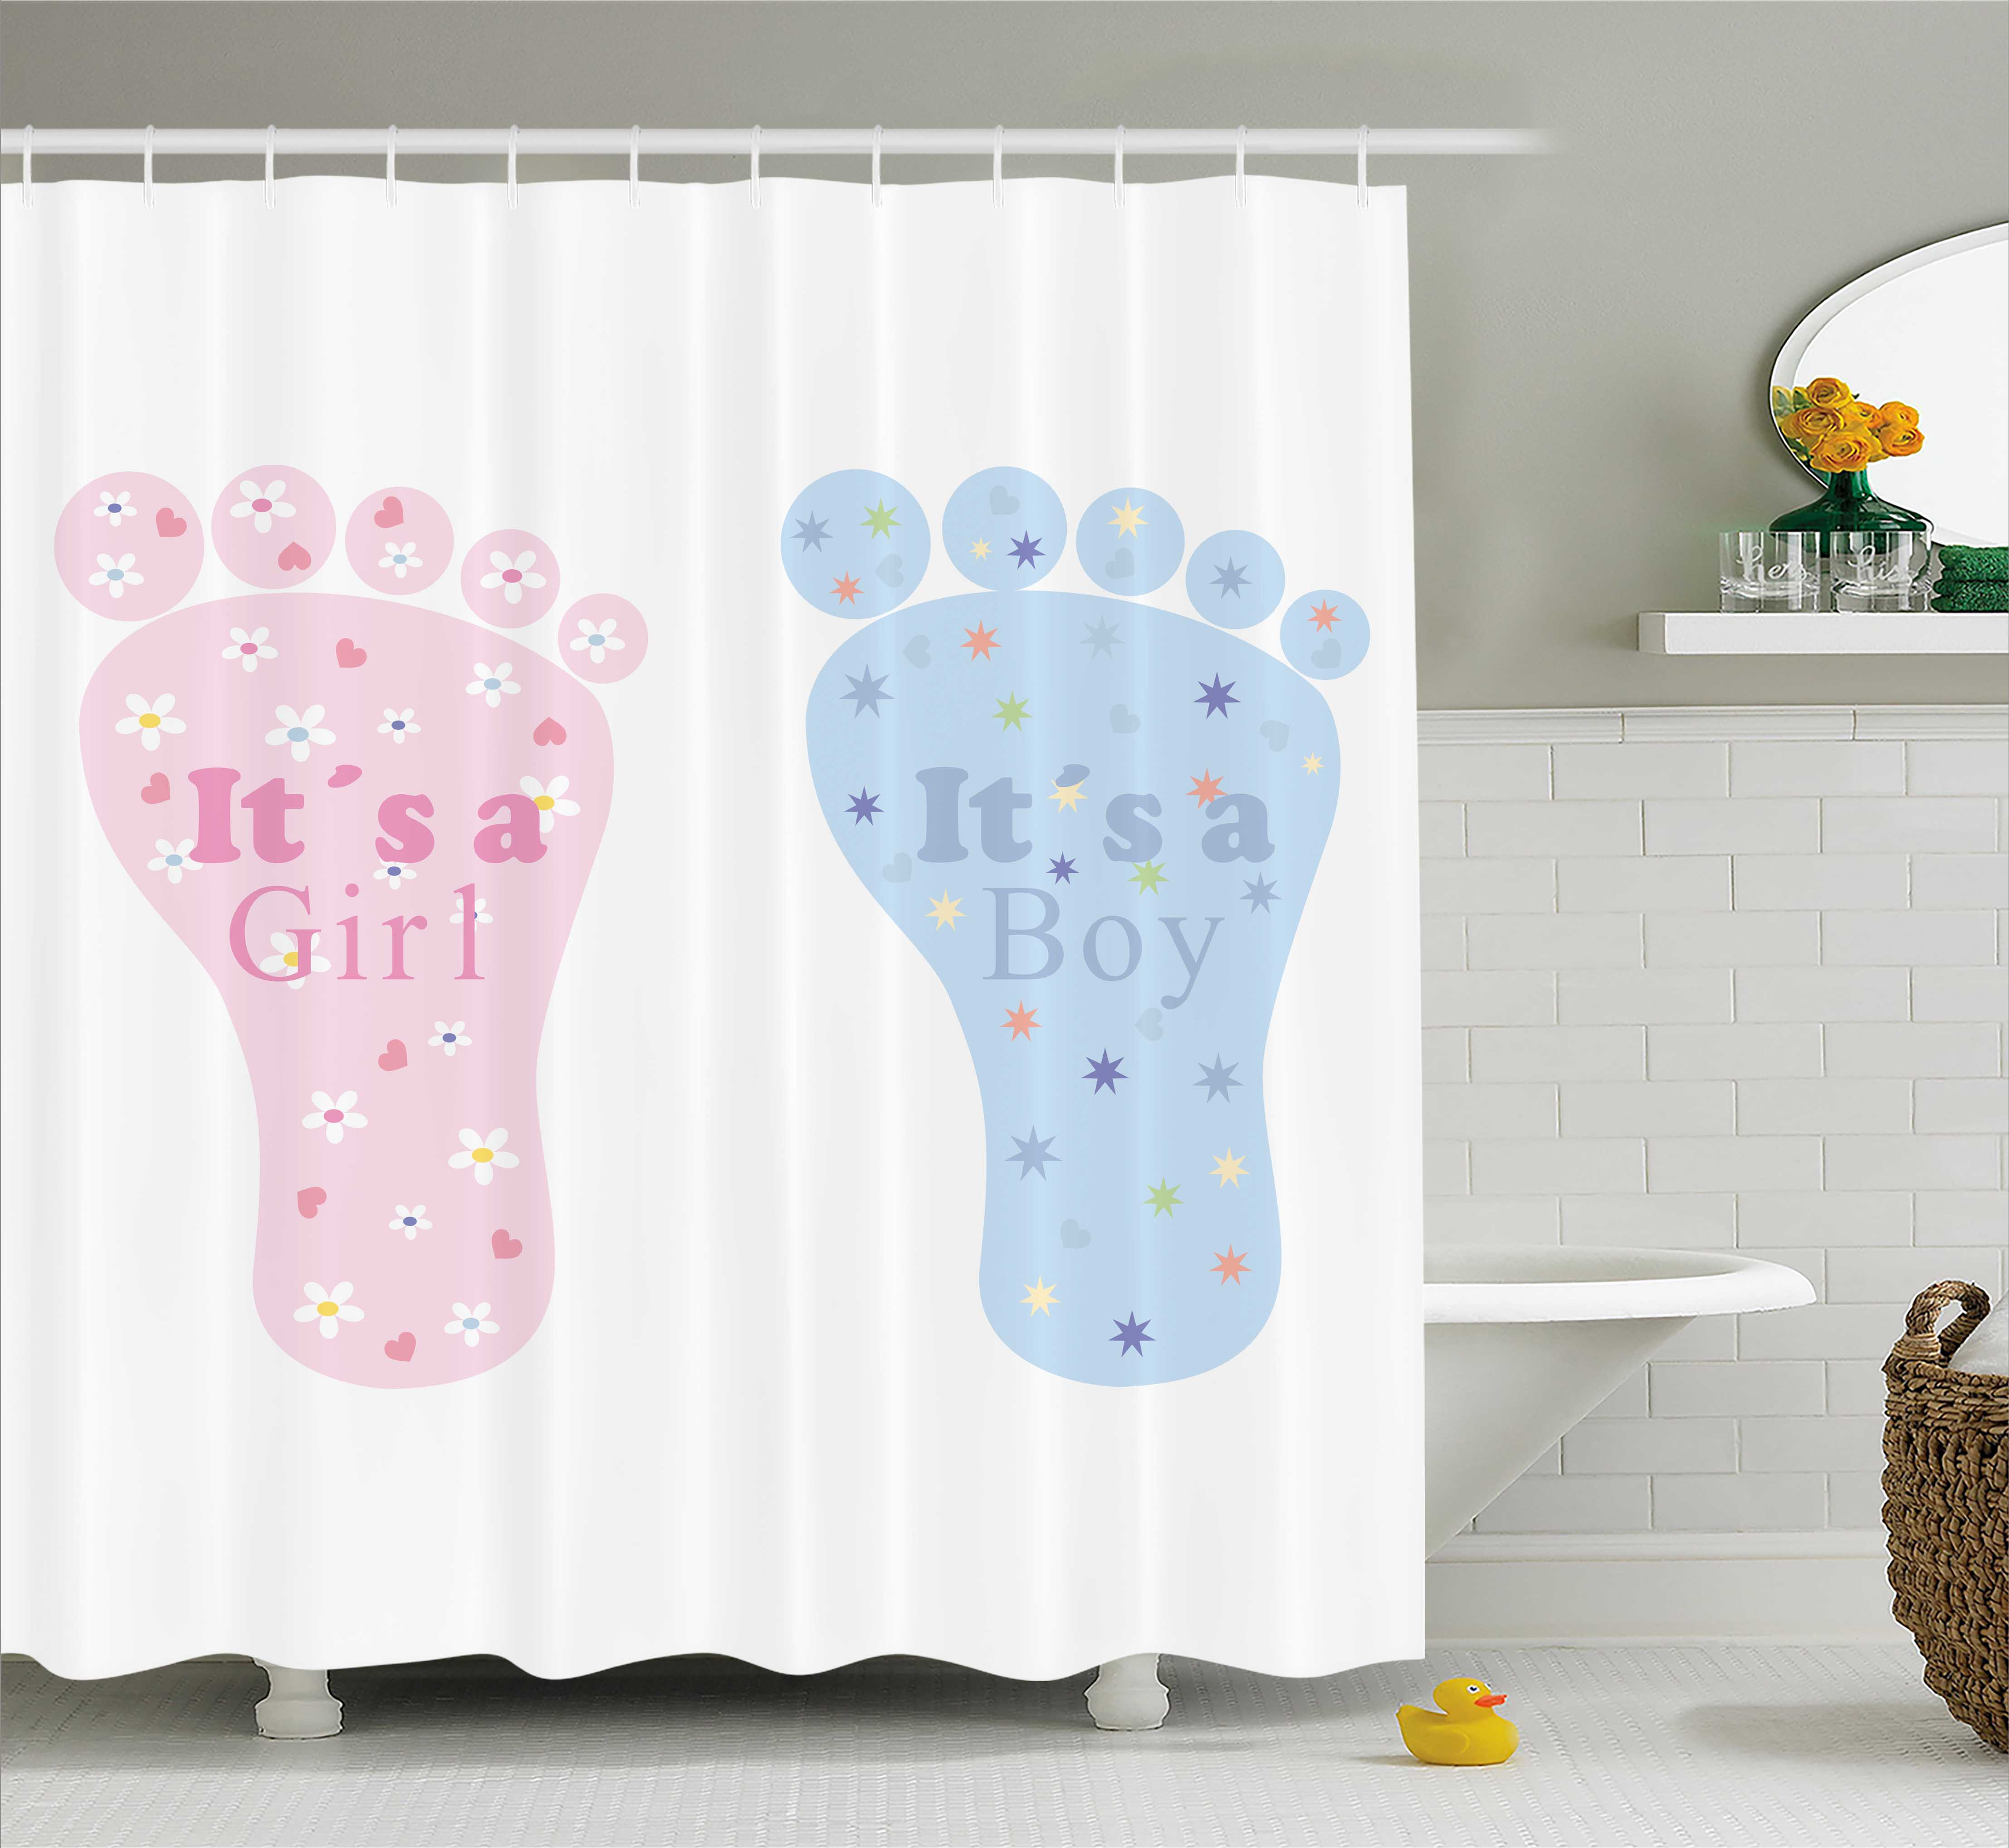 Baby Blue Bathroom Set: Gender Reveal Shower Curtain, Baby Footprints And Floral